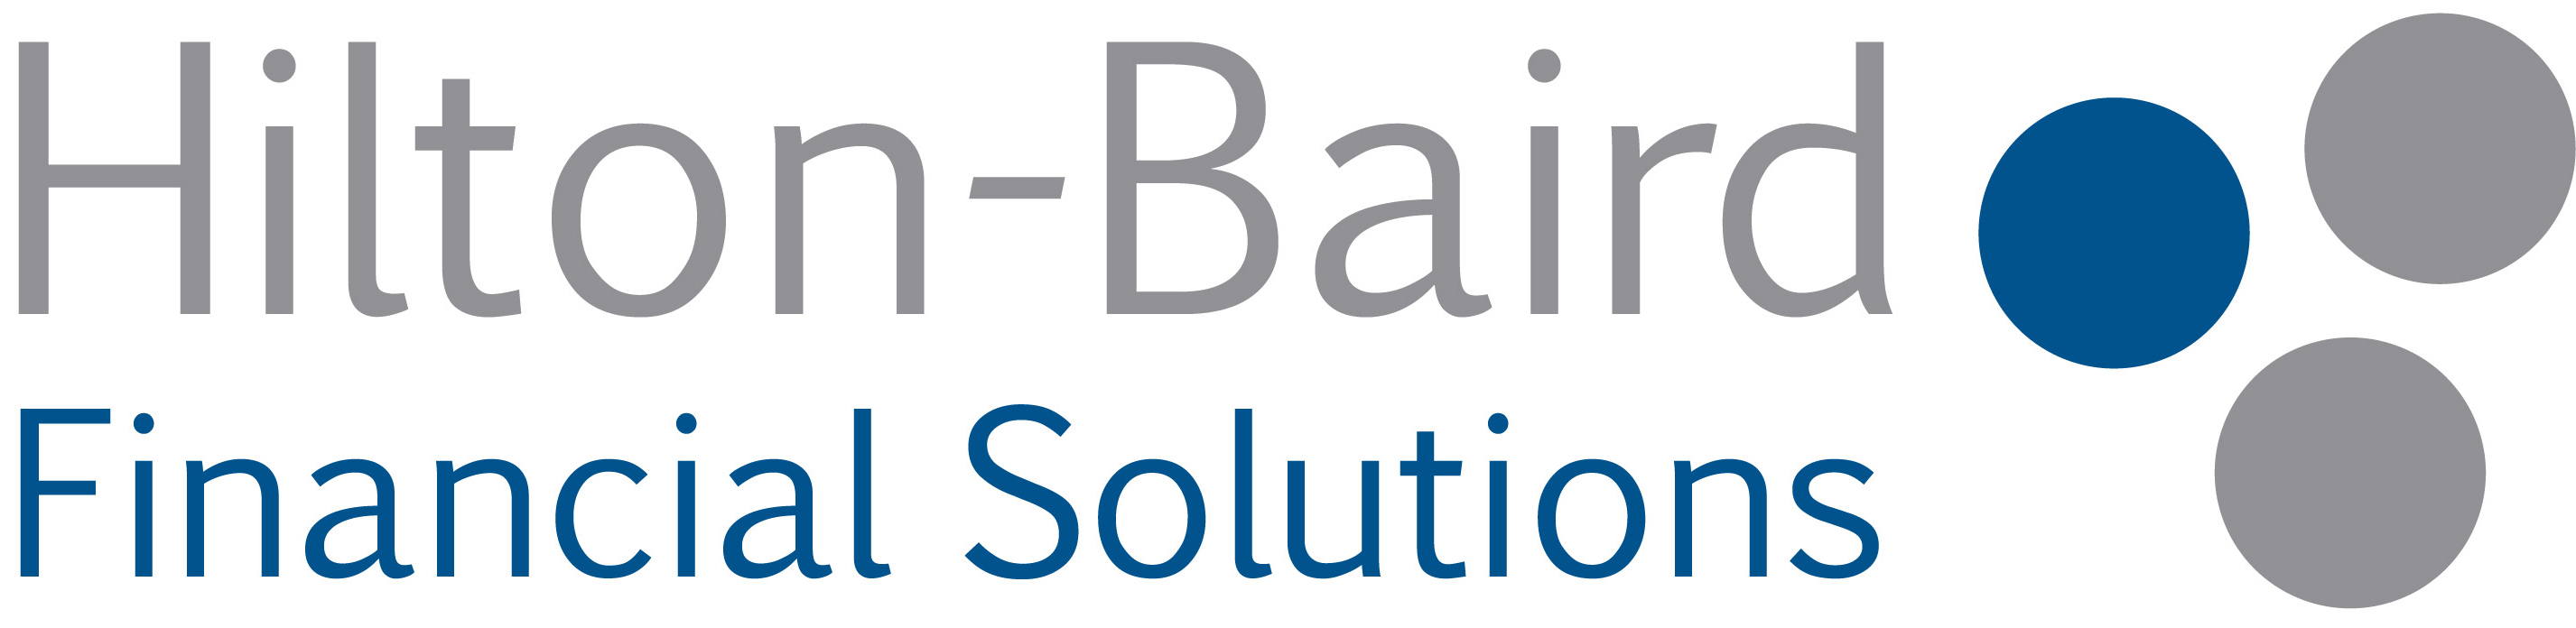 Hilton-Baird Financial Solutions Limited